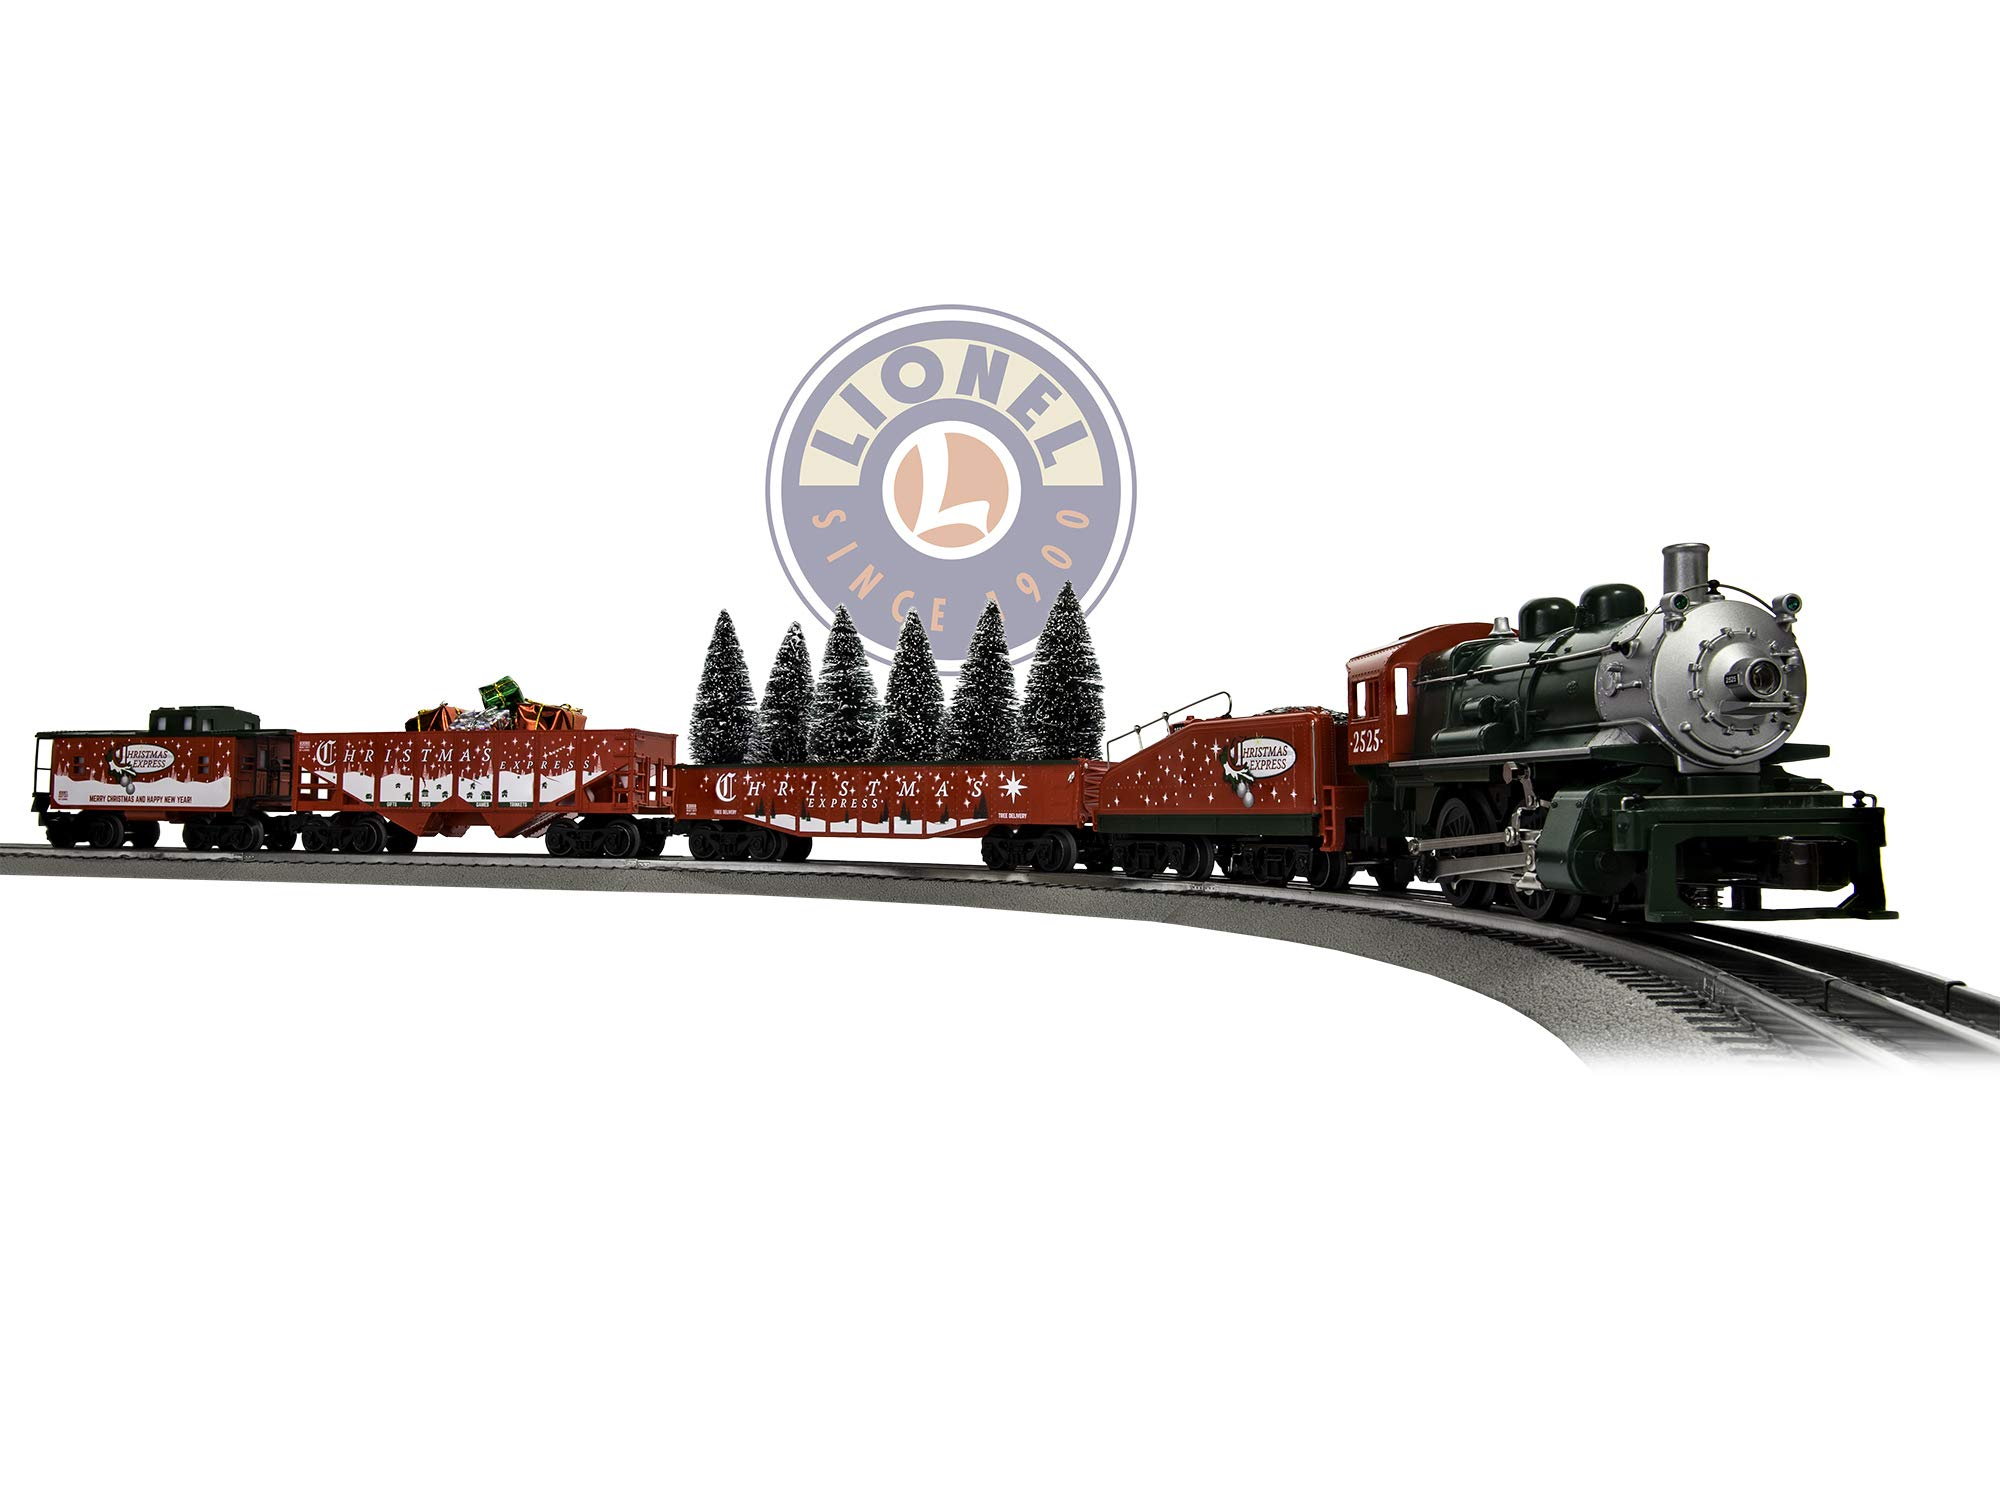 Lionel The Christmas Express, Electric O Gauge Model Train Set w/ Remote and Bluetooth Capability by Lionel